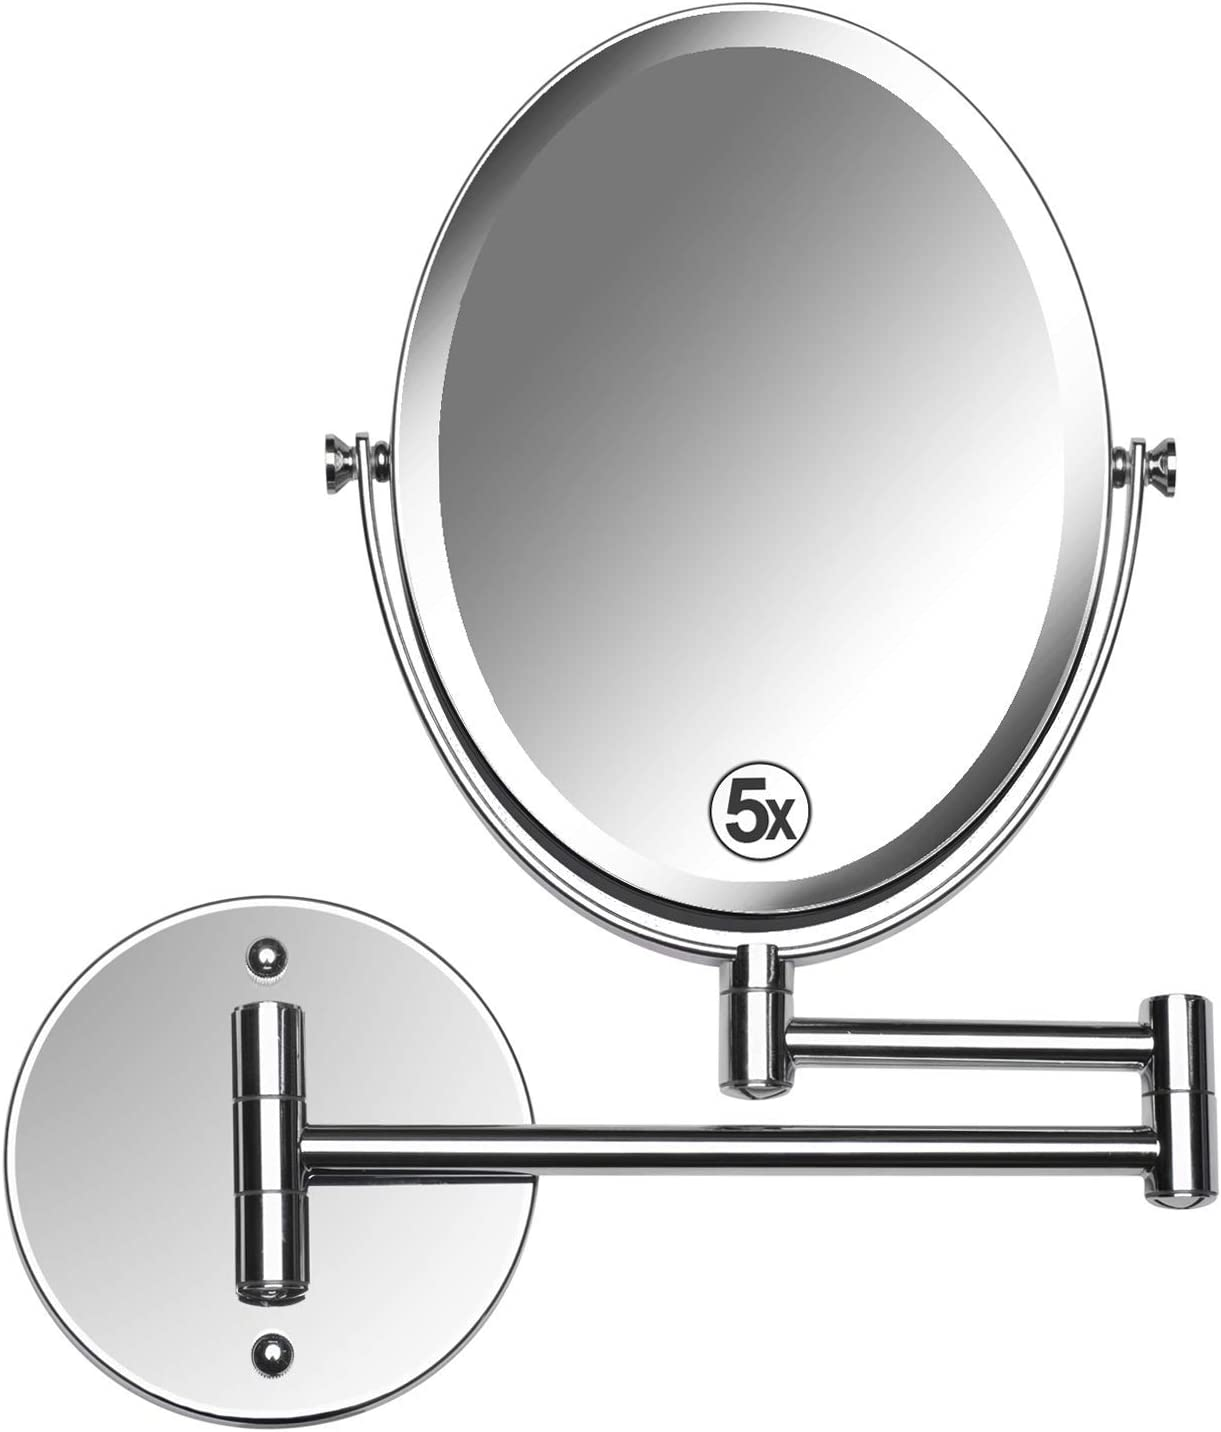 Mirrorvana Oval Wall Mount Bathroom Makeup Mirror, Double Sided 5X 1x Magnifying, 13-Inch Extension Swivel, 6.6 x 8.6 Reflection, Chrome